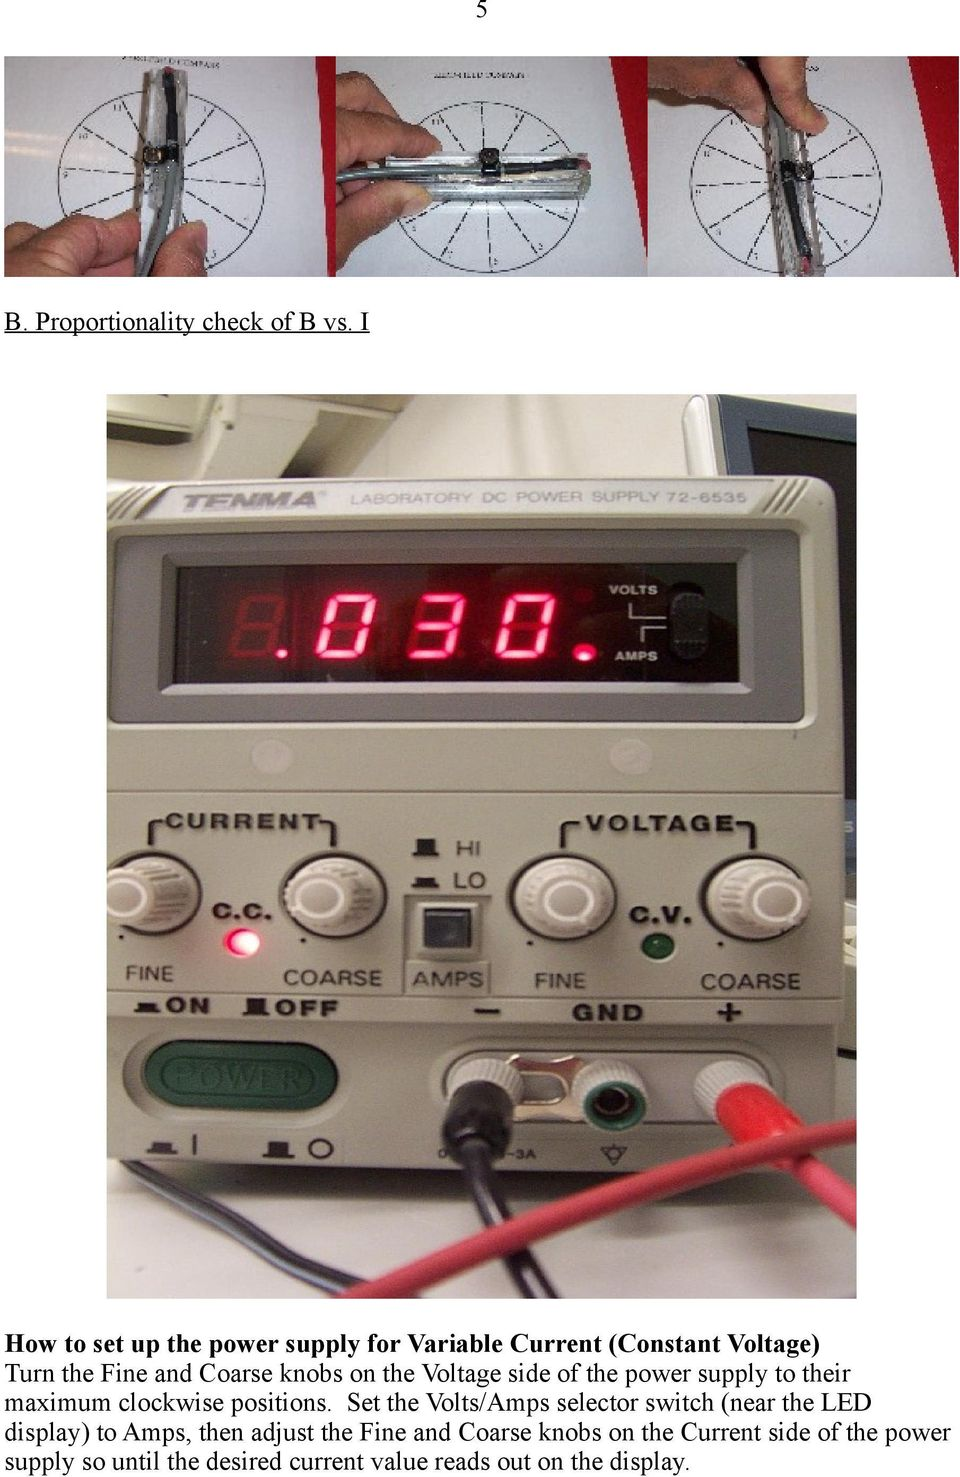 on the Voltage side of the power supply to their maximum clockwise positions.